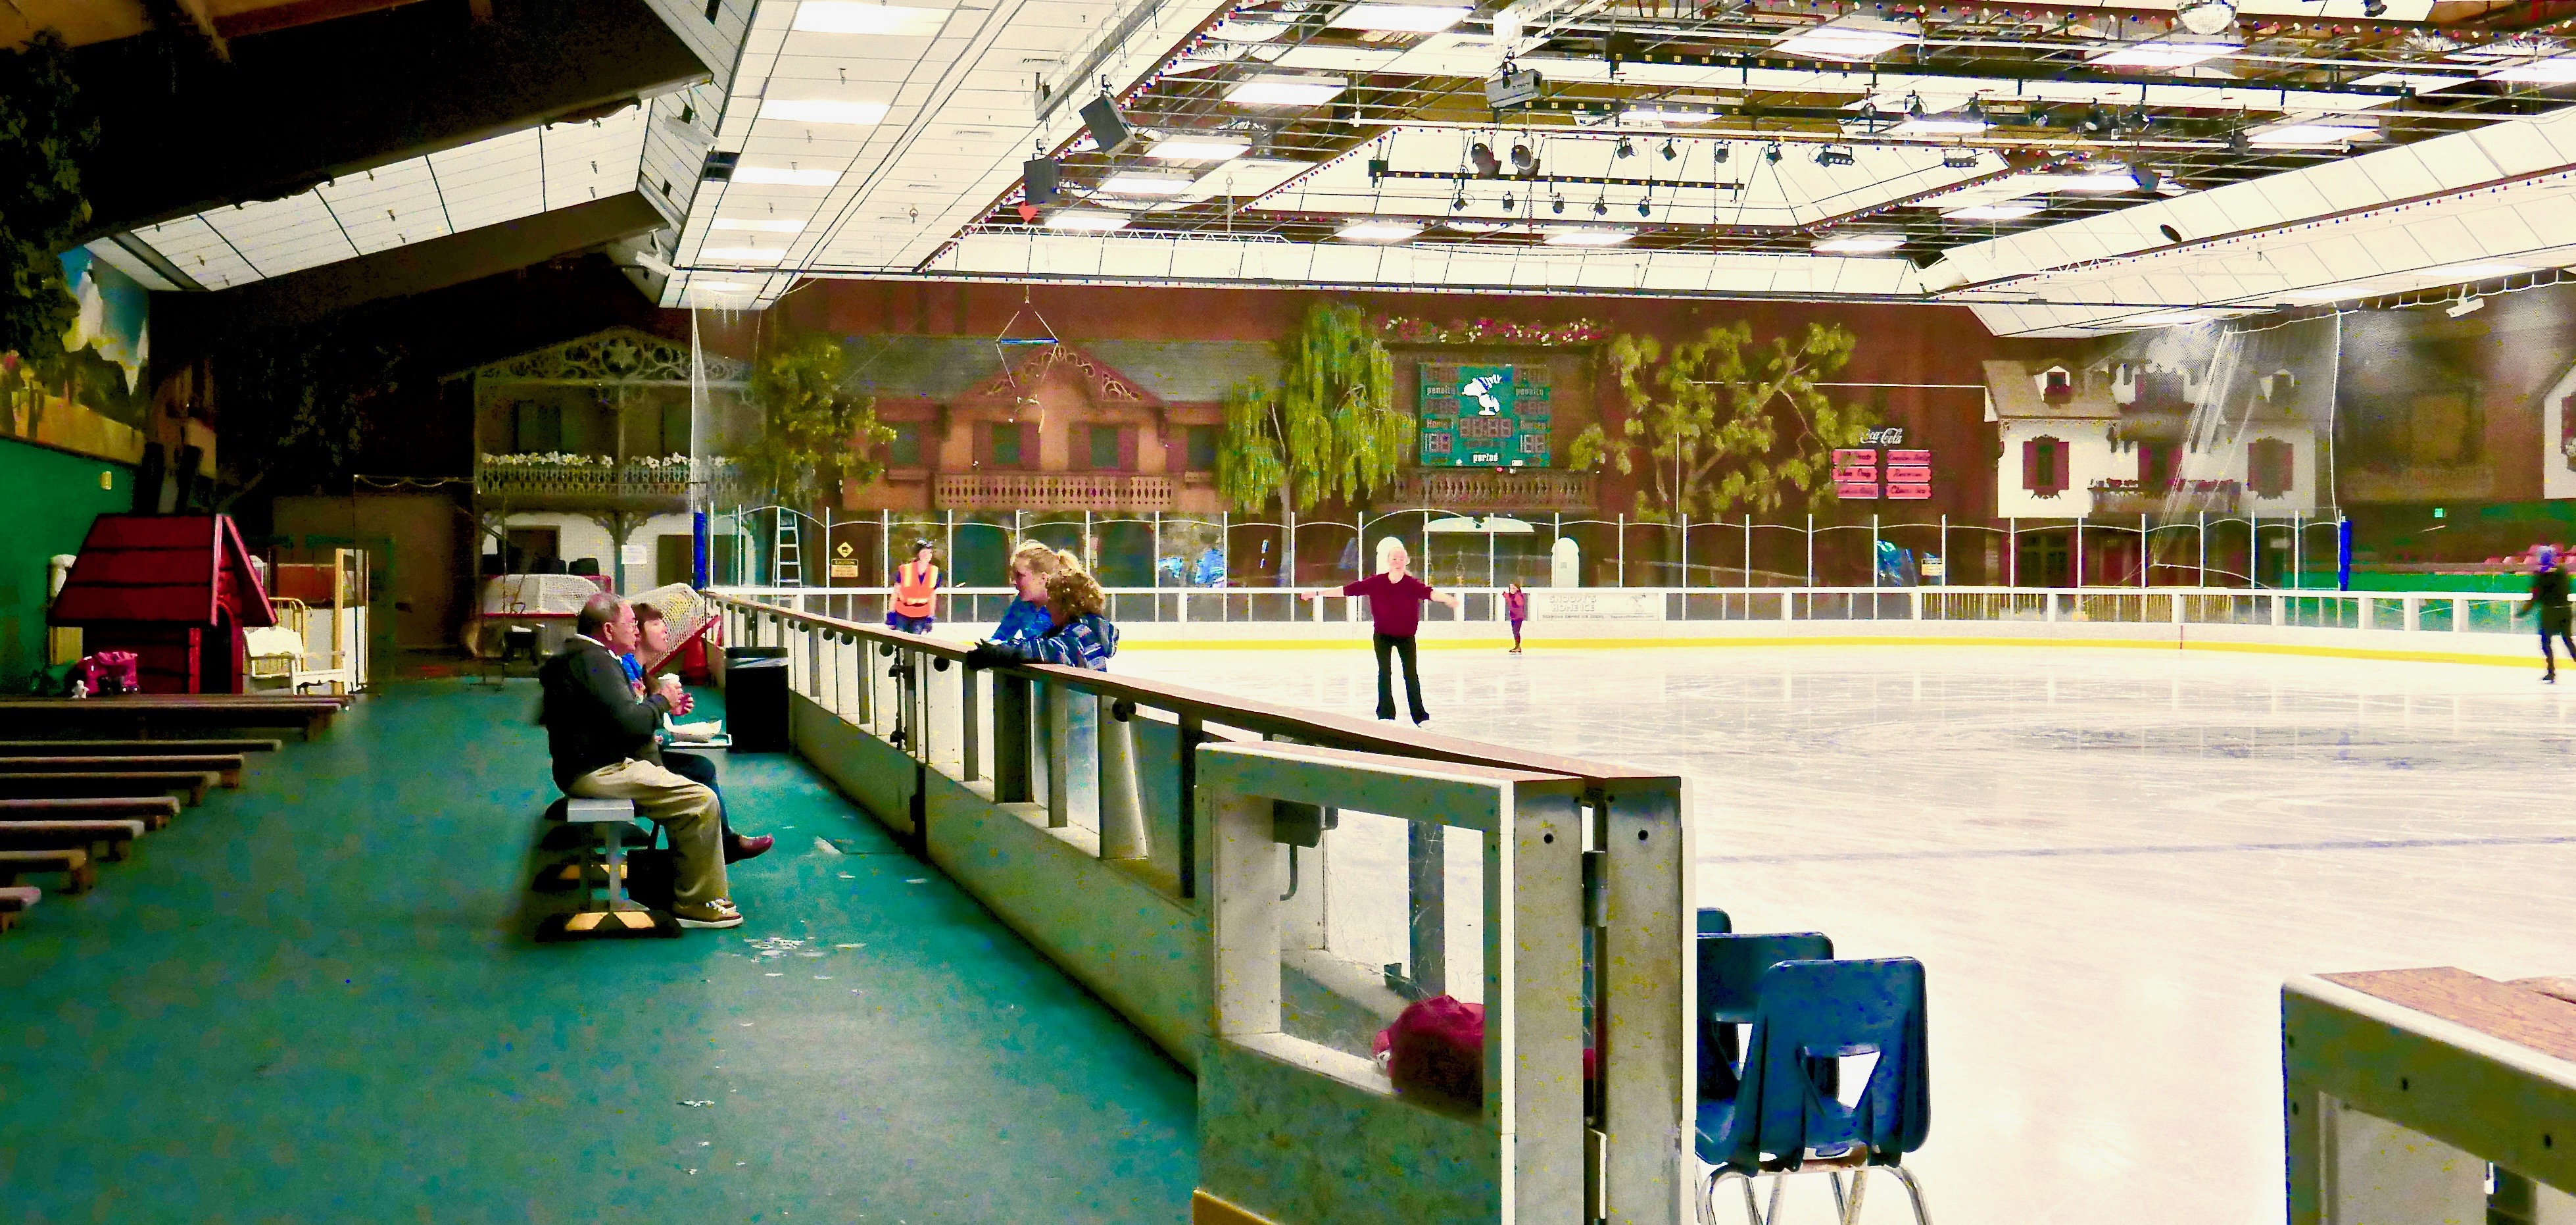 Snoopy's Home Ice Skating Rink